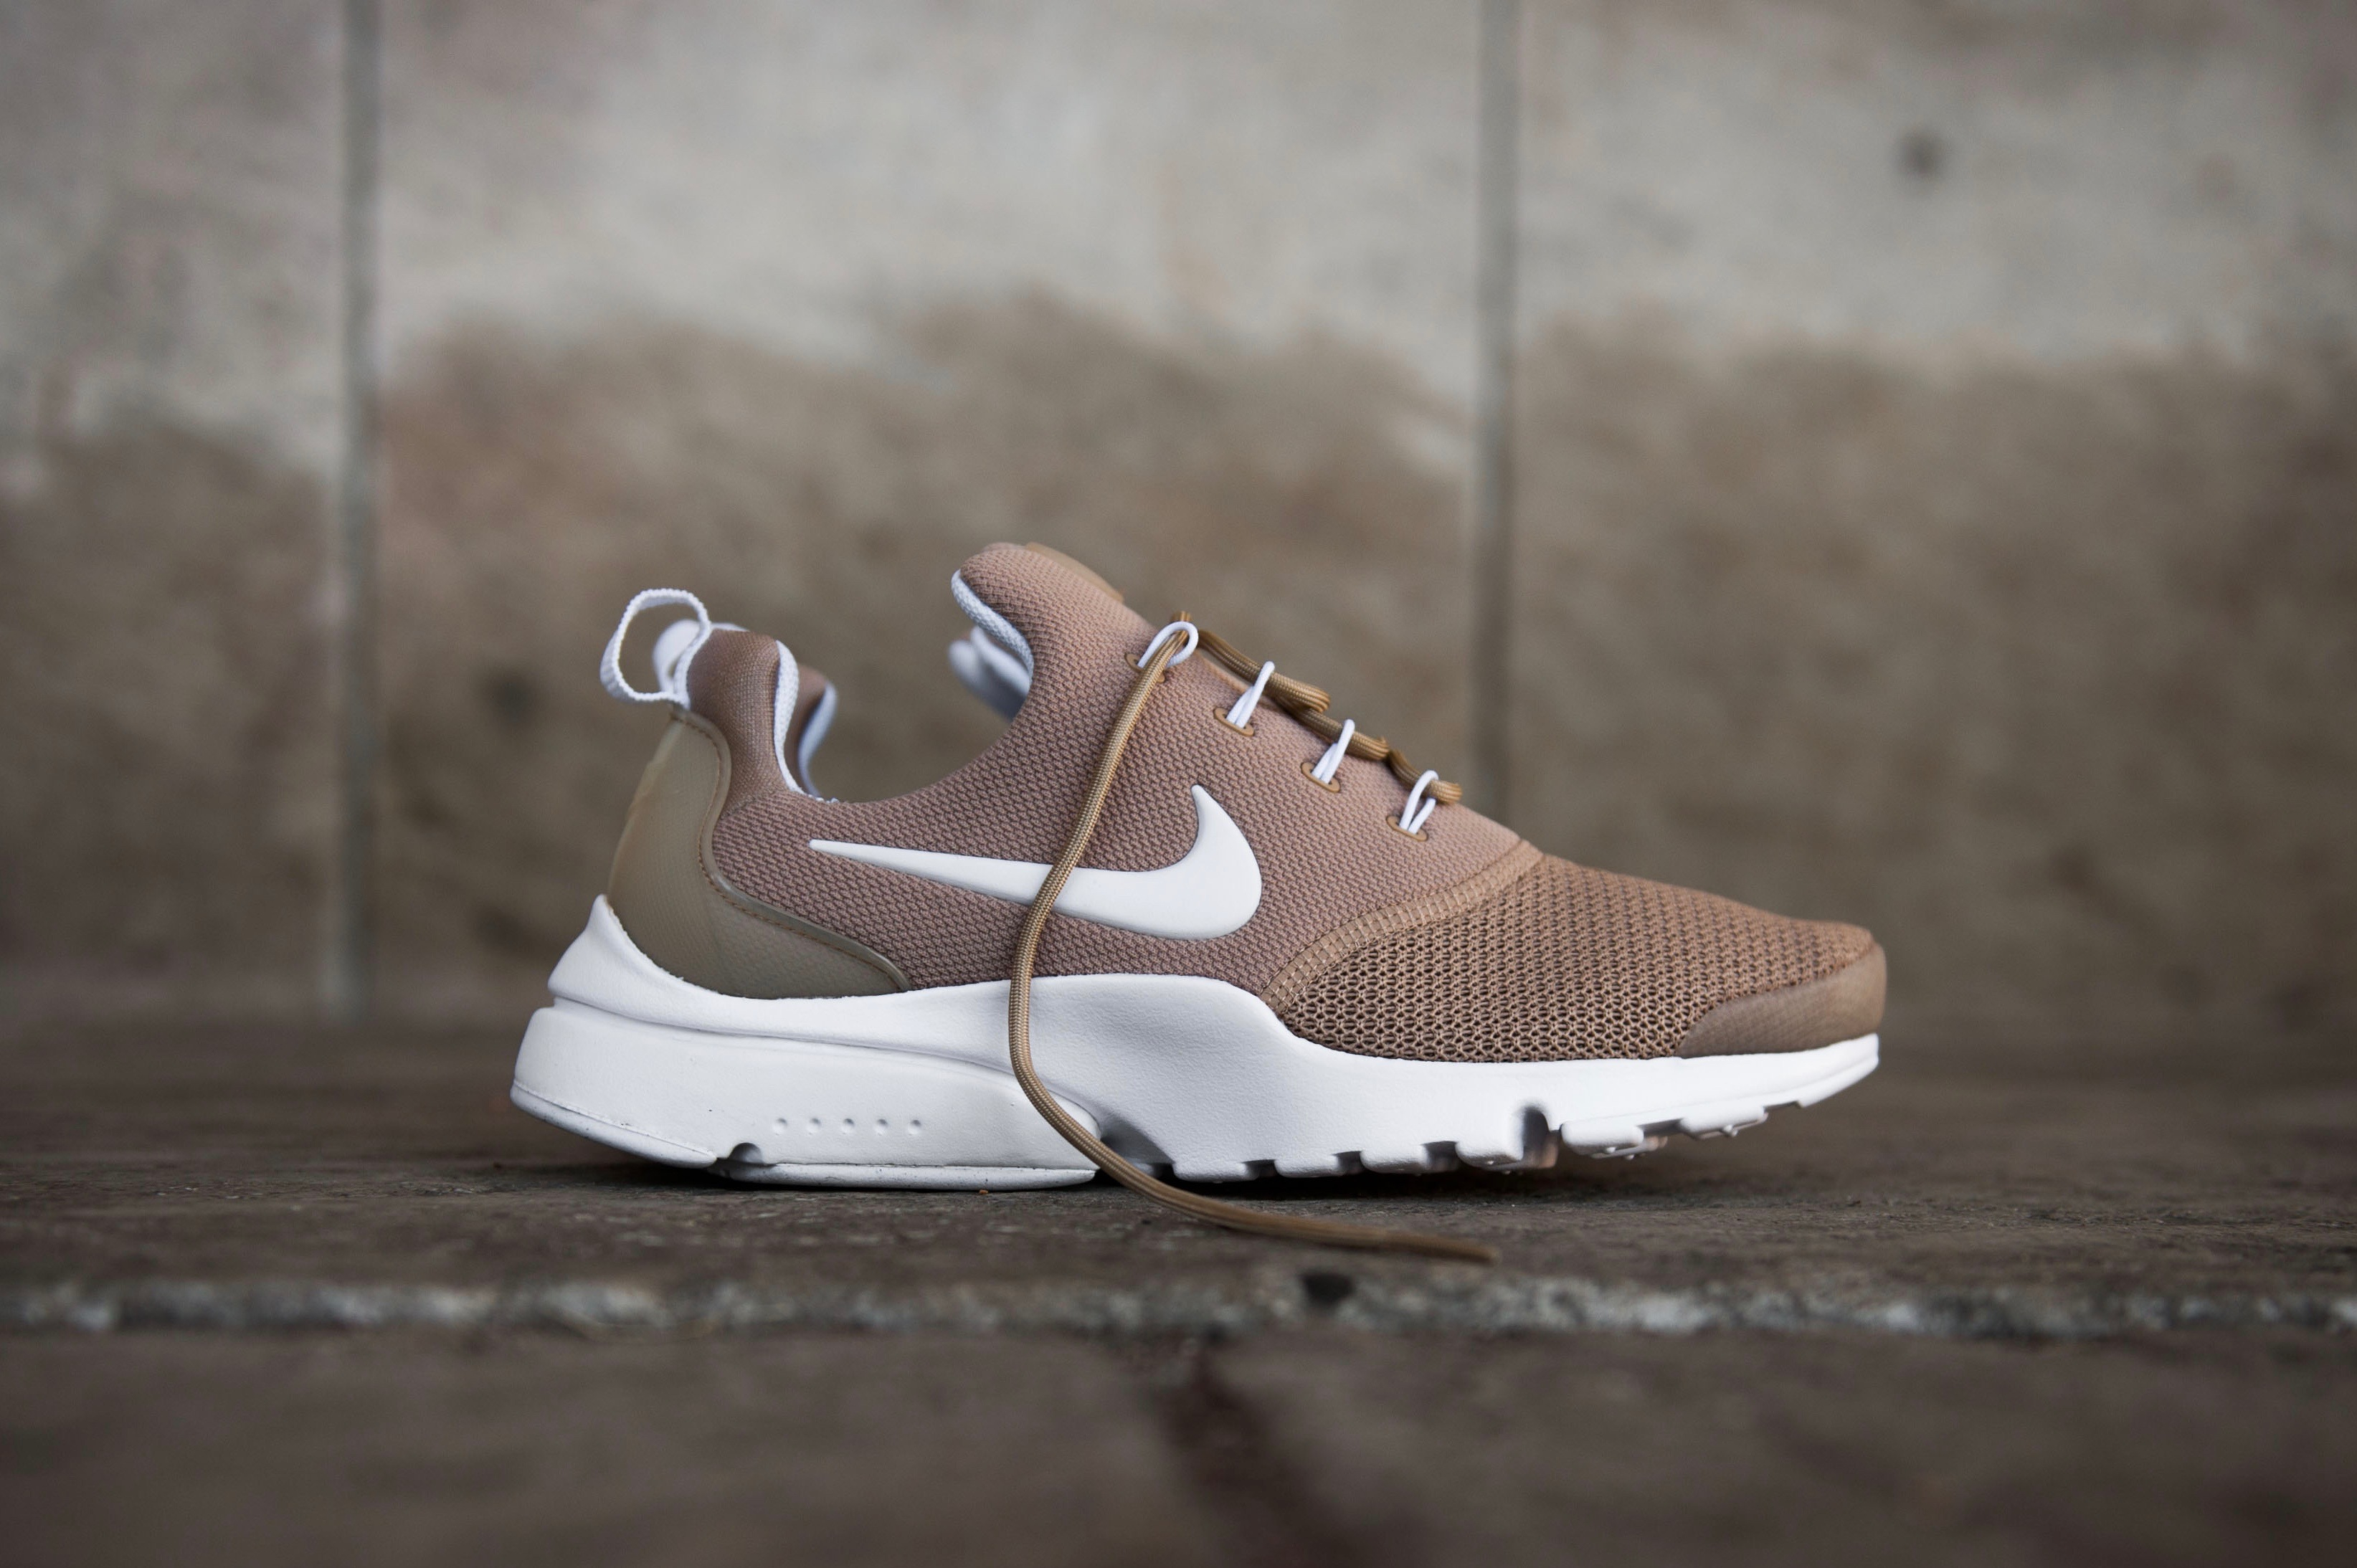 newest 16951 5dd78 Nike W Presto Fly - Sand / White